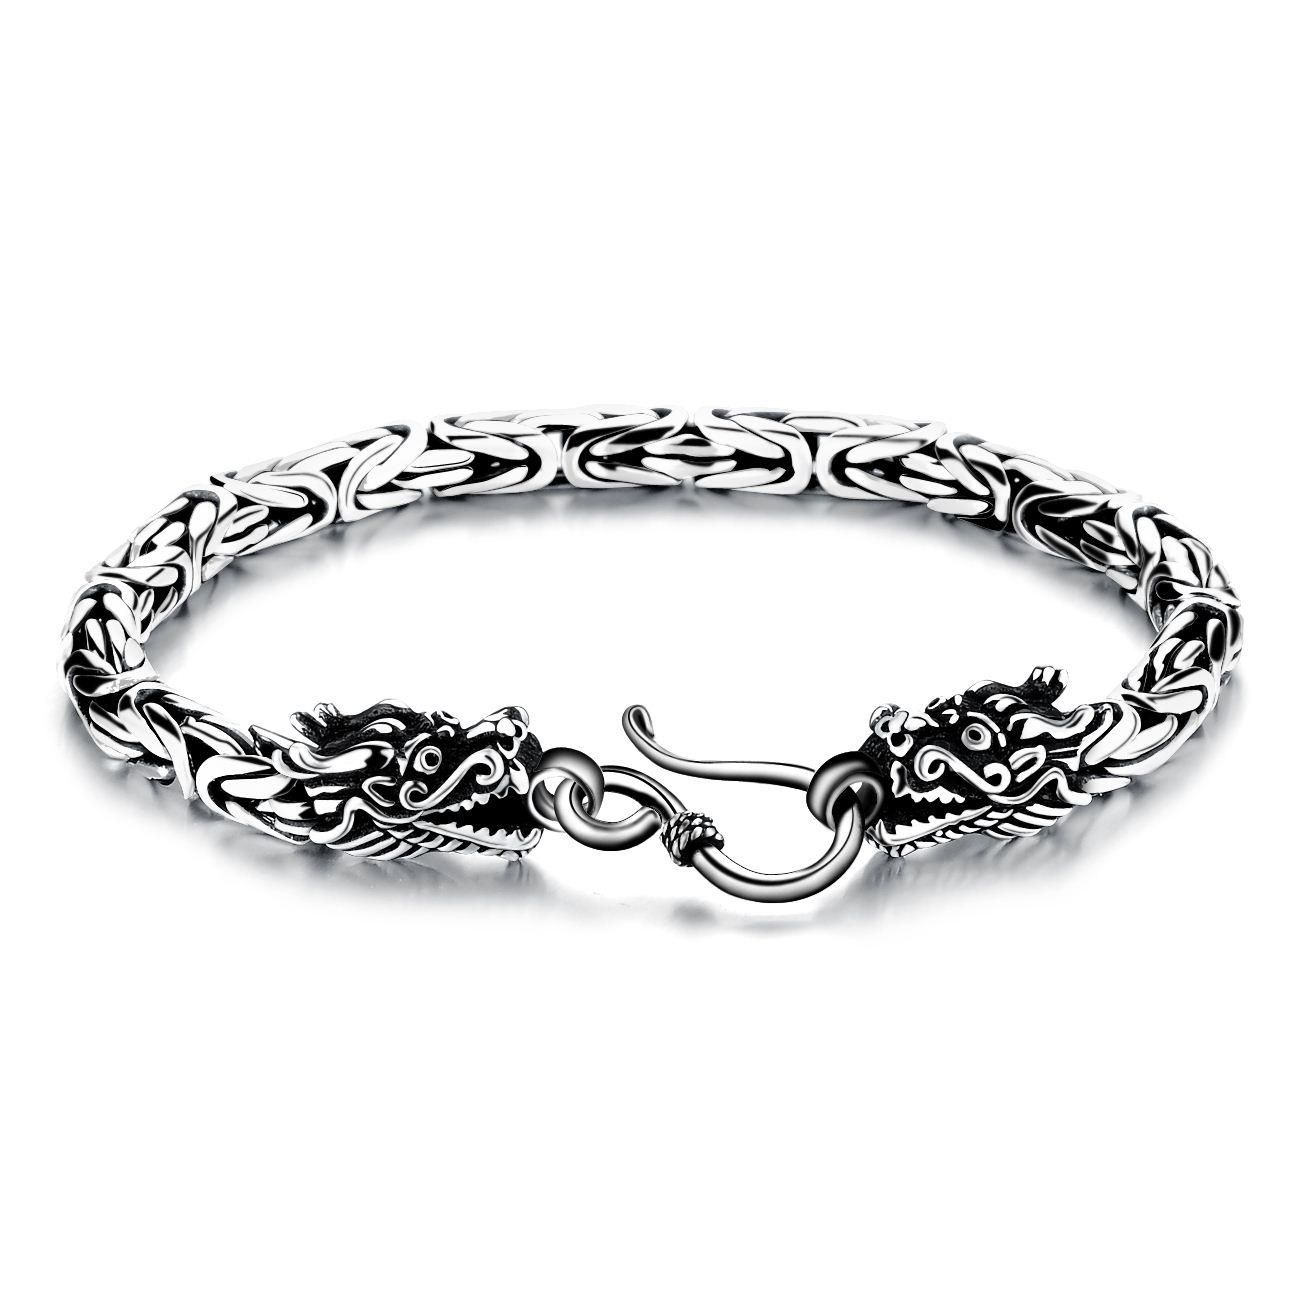 7446bffecde27b silver bracelet for mens with grams,mens silver bracelet online shopping,pure  silver bracelet for mens,silver kada for mens,silver bracelet design,silver  ...